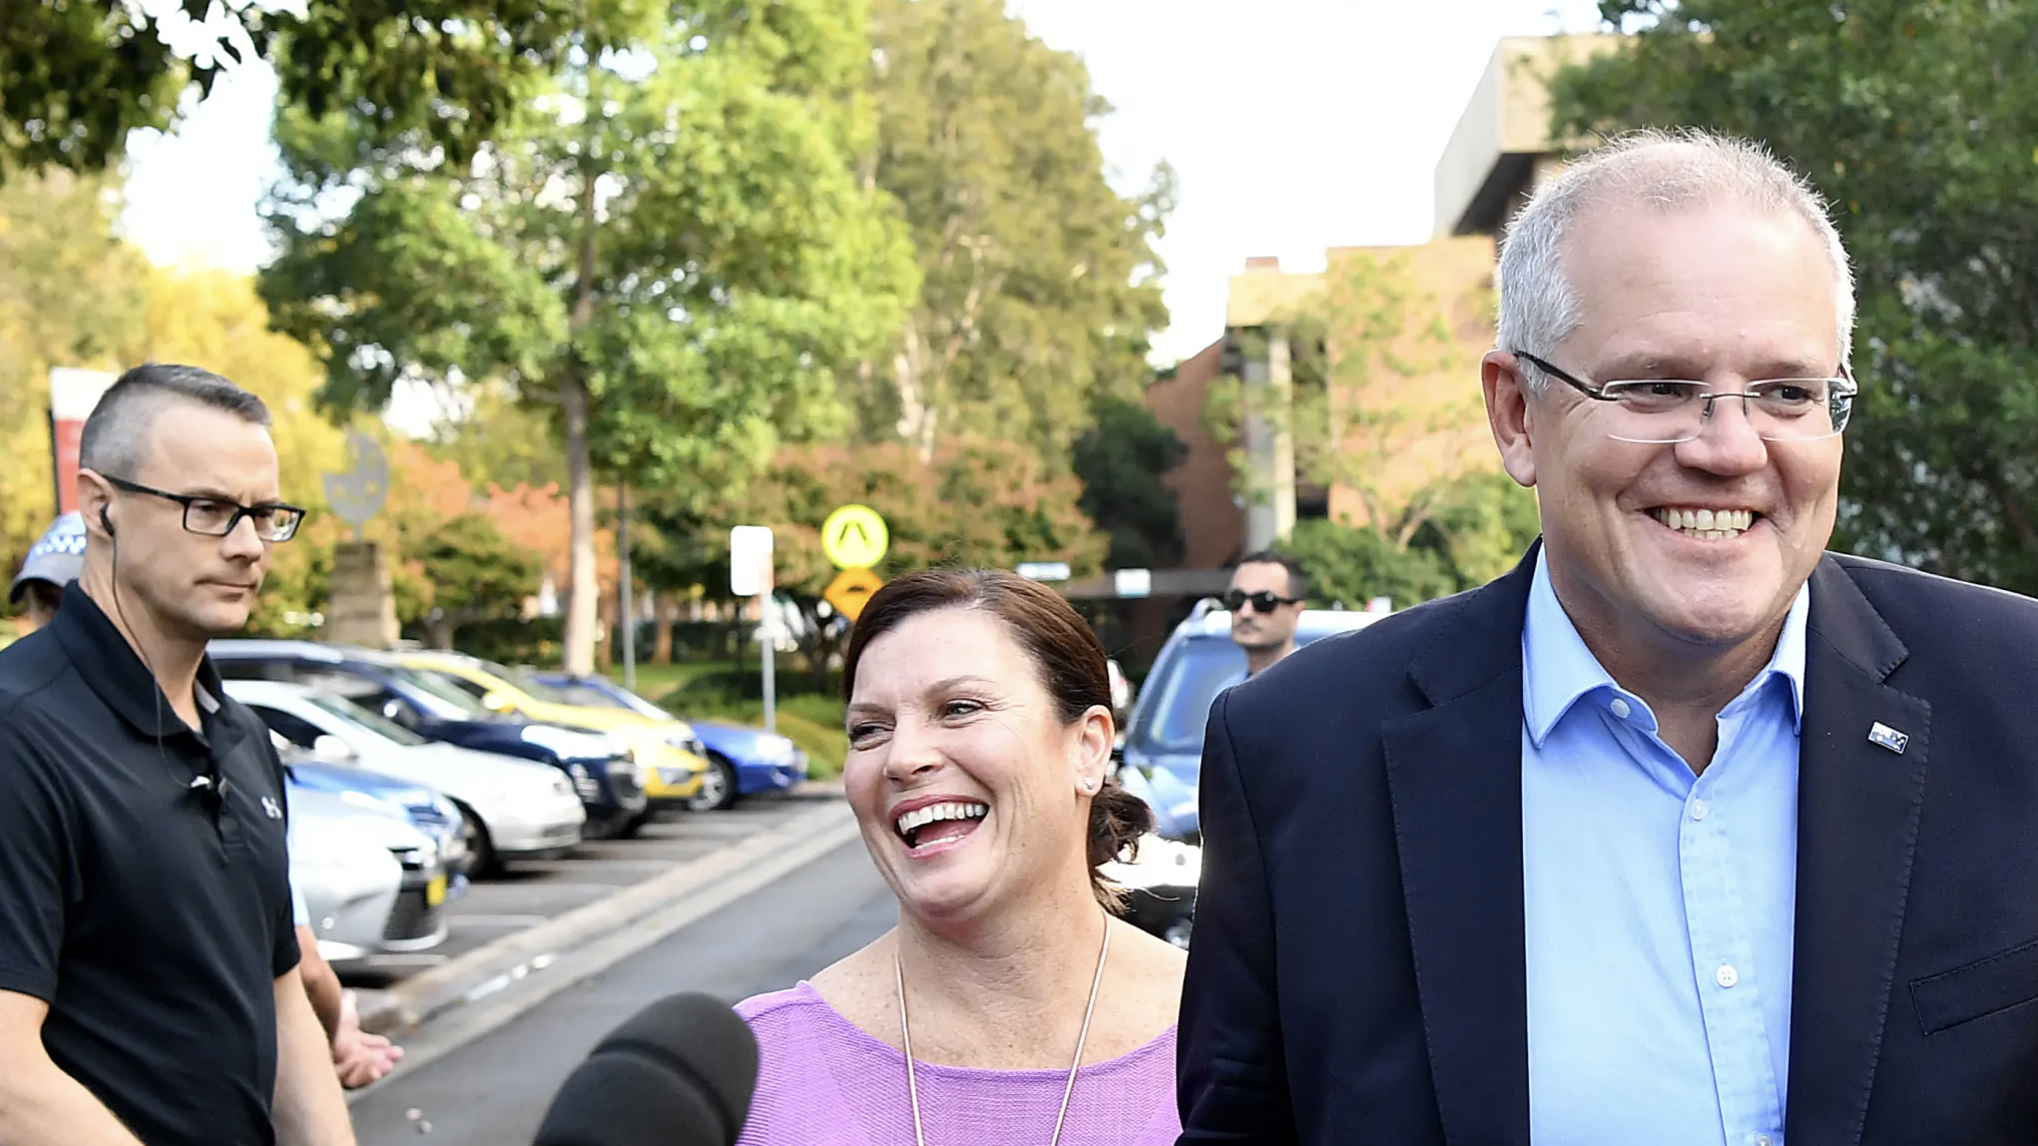 Prime Minister Scott Morrison and wife Jenny speak to the media as they arrive at the Horizon Church in Sutherland, Sydney, on Sunday.   Credit:Joel Carrett/AAP